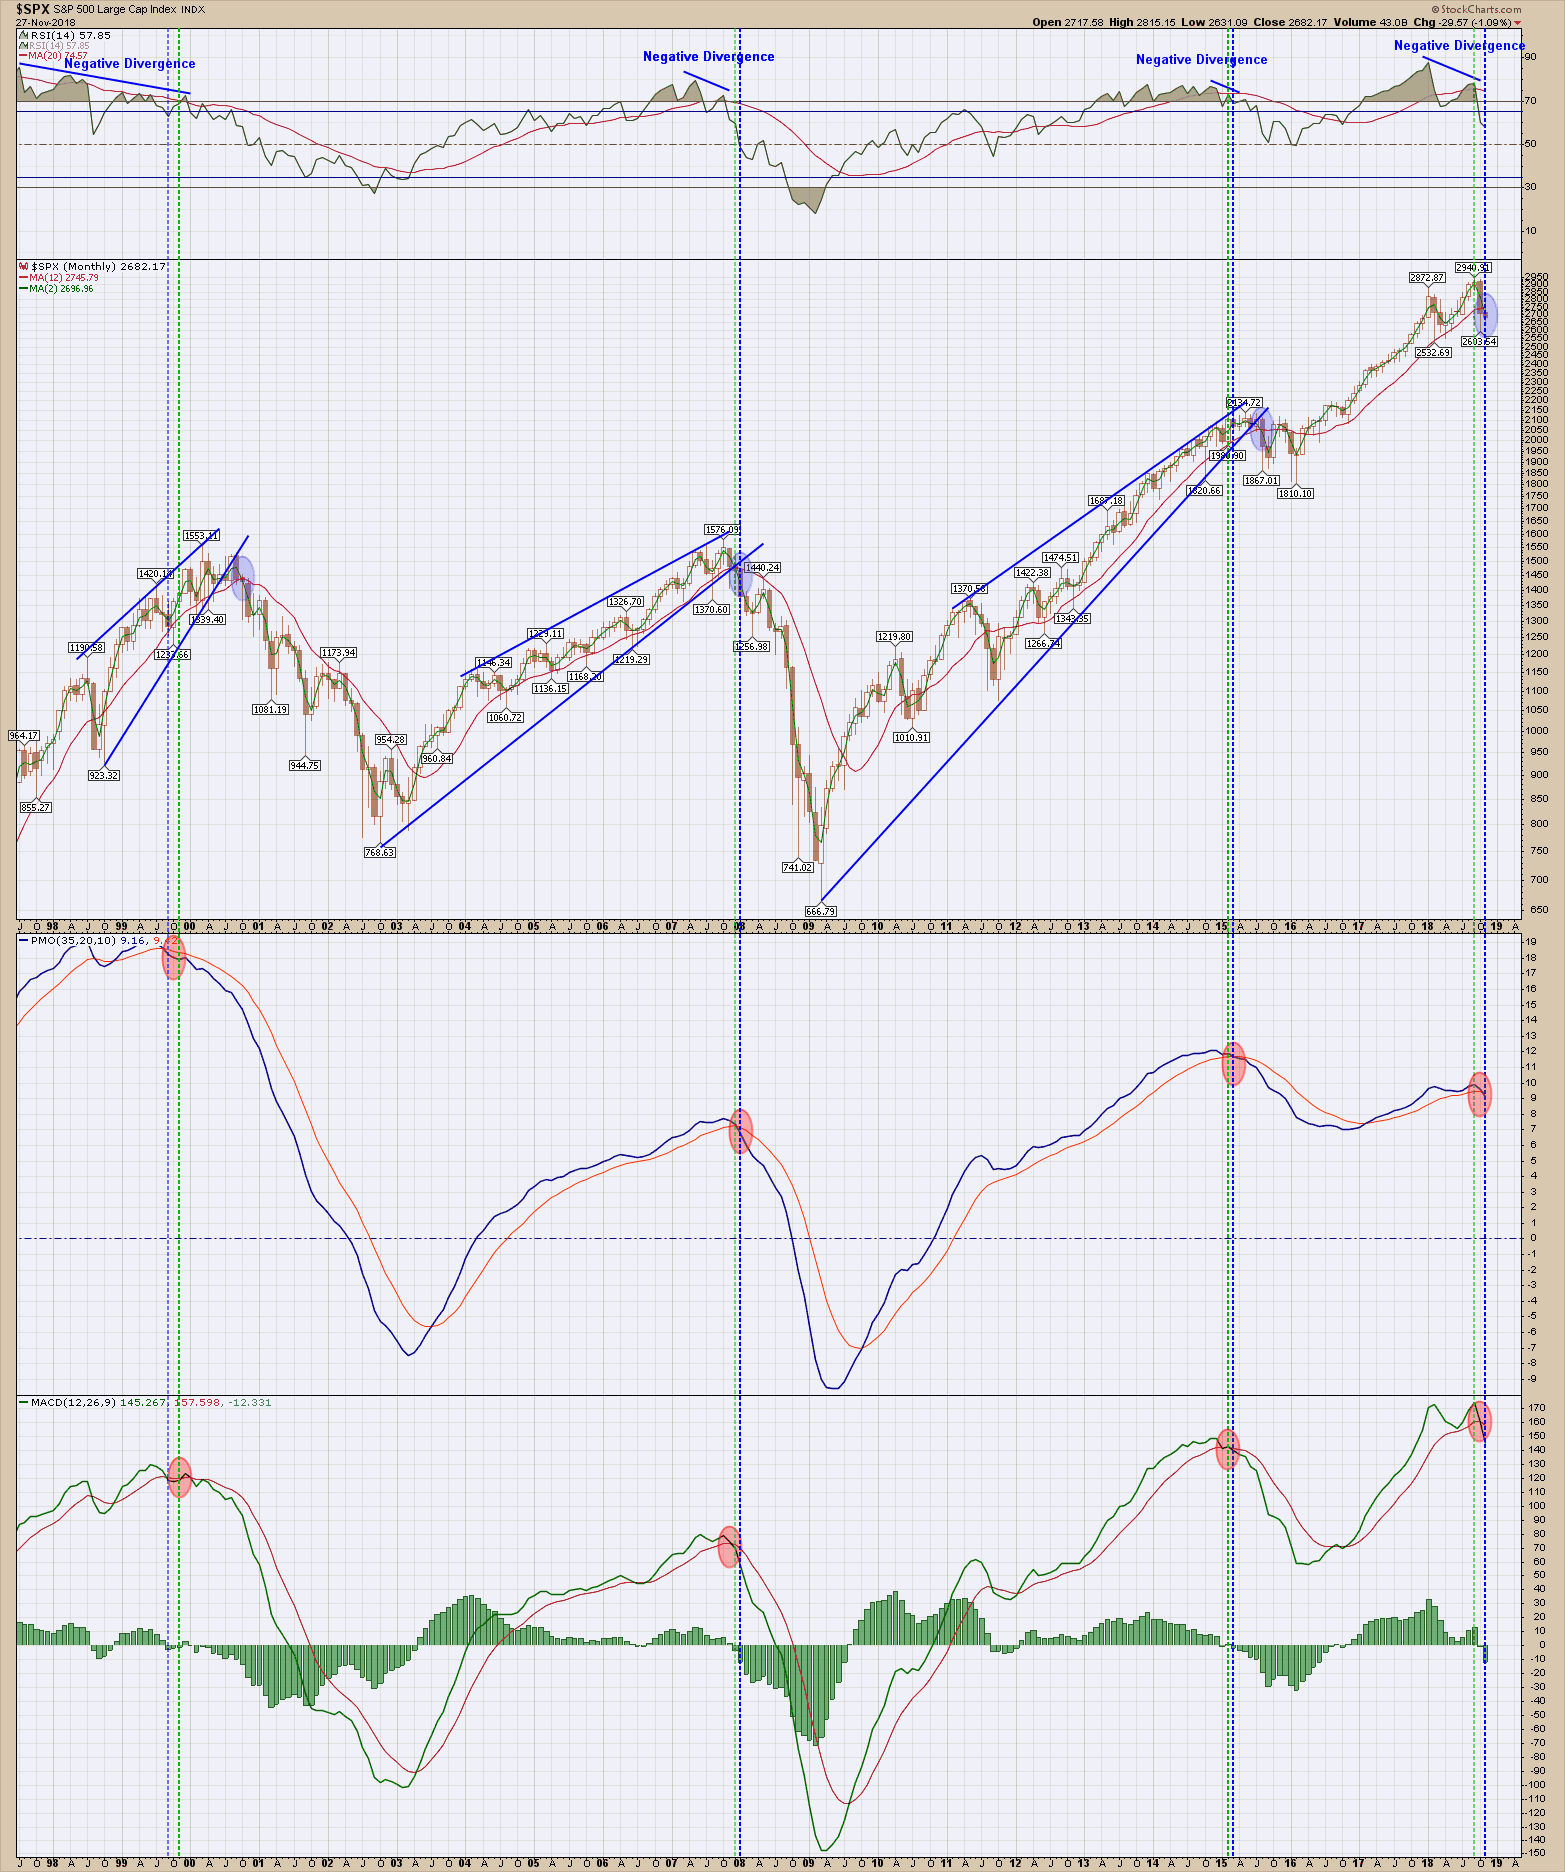 san ramon and bay area fiduciary cfp and fee only NAPFA investment advisor -long term sell signal on market 11-28-18.png